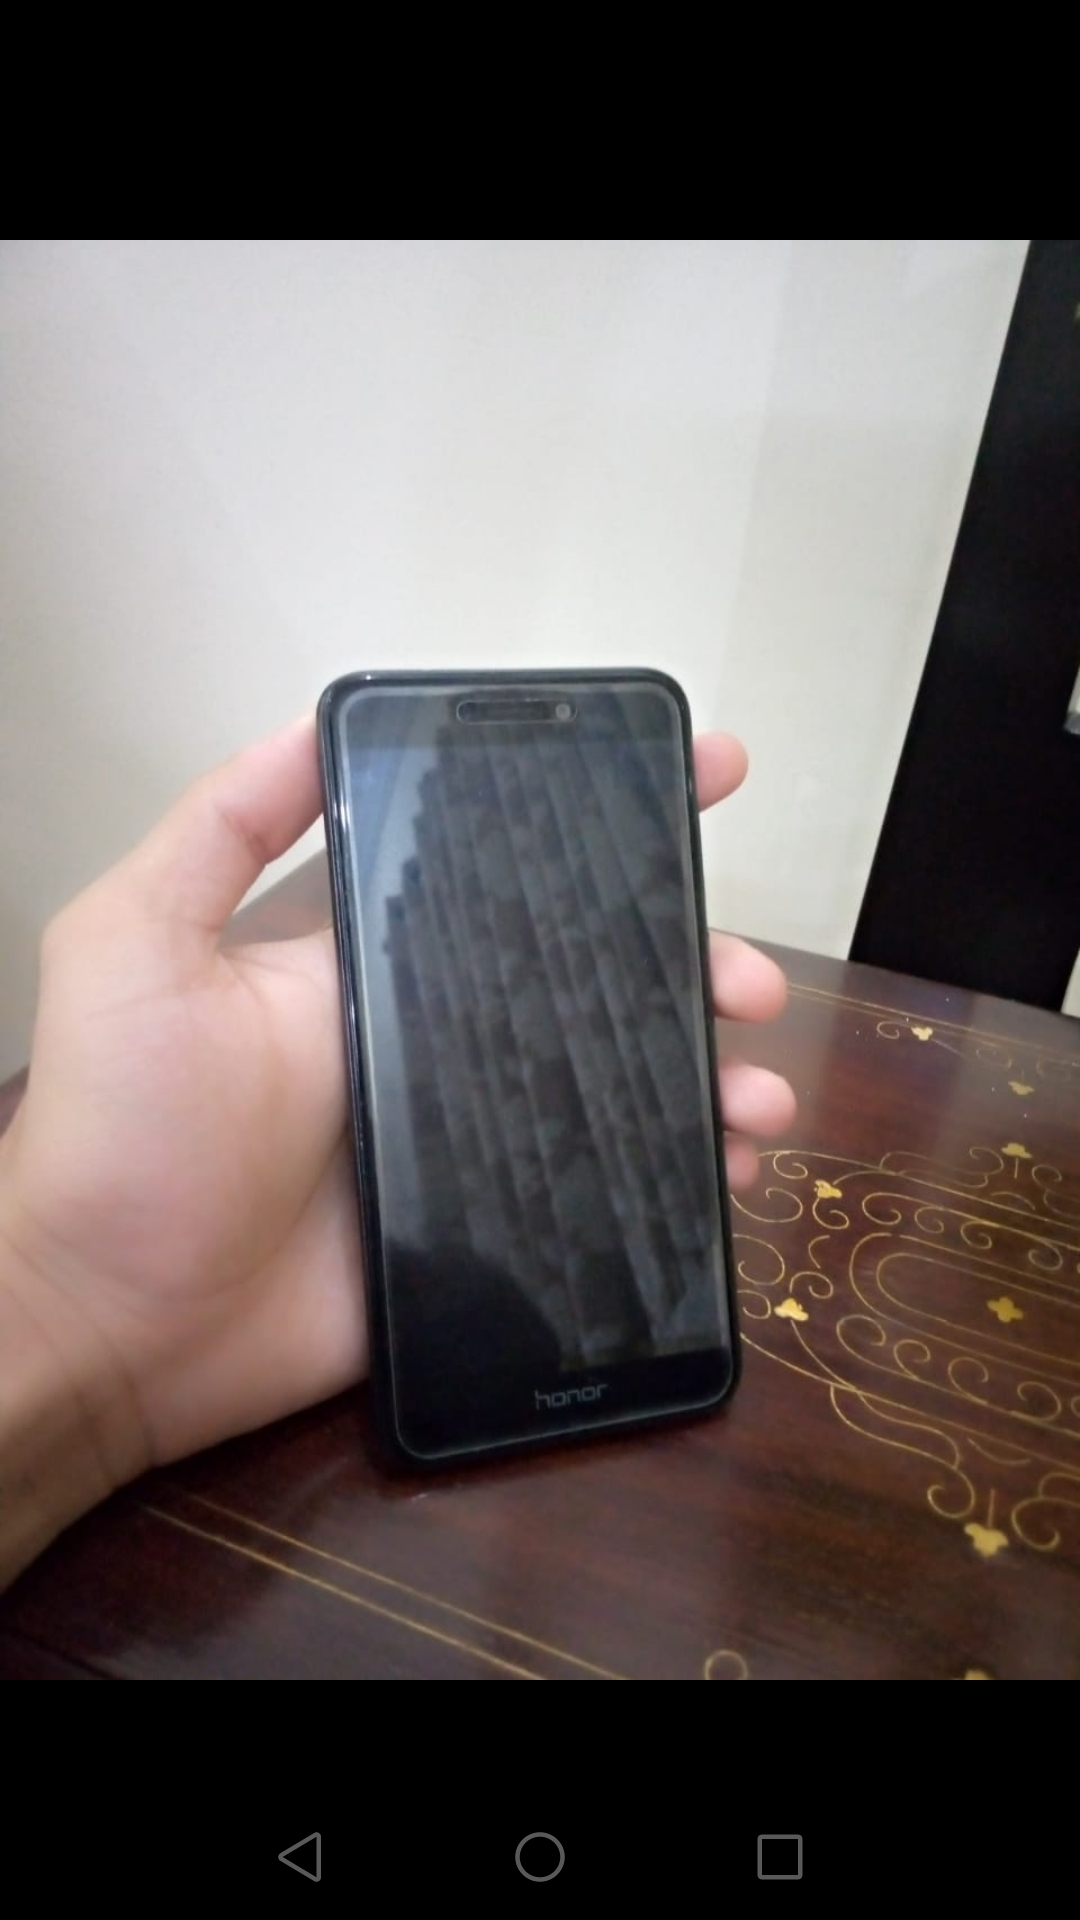 Huawei Honor 8 Lite for sale in perfect working condition - photo 3